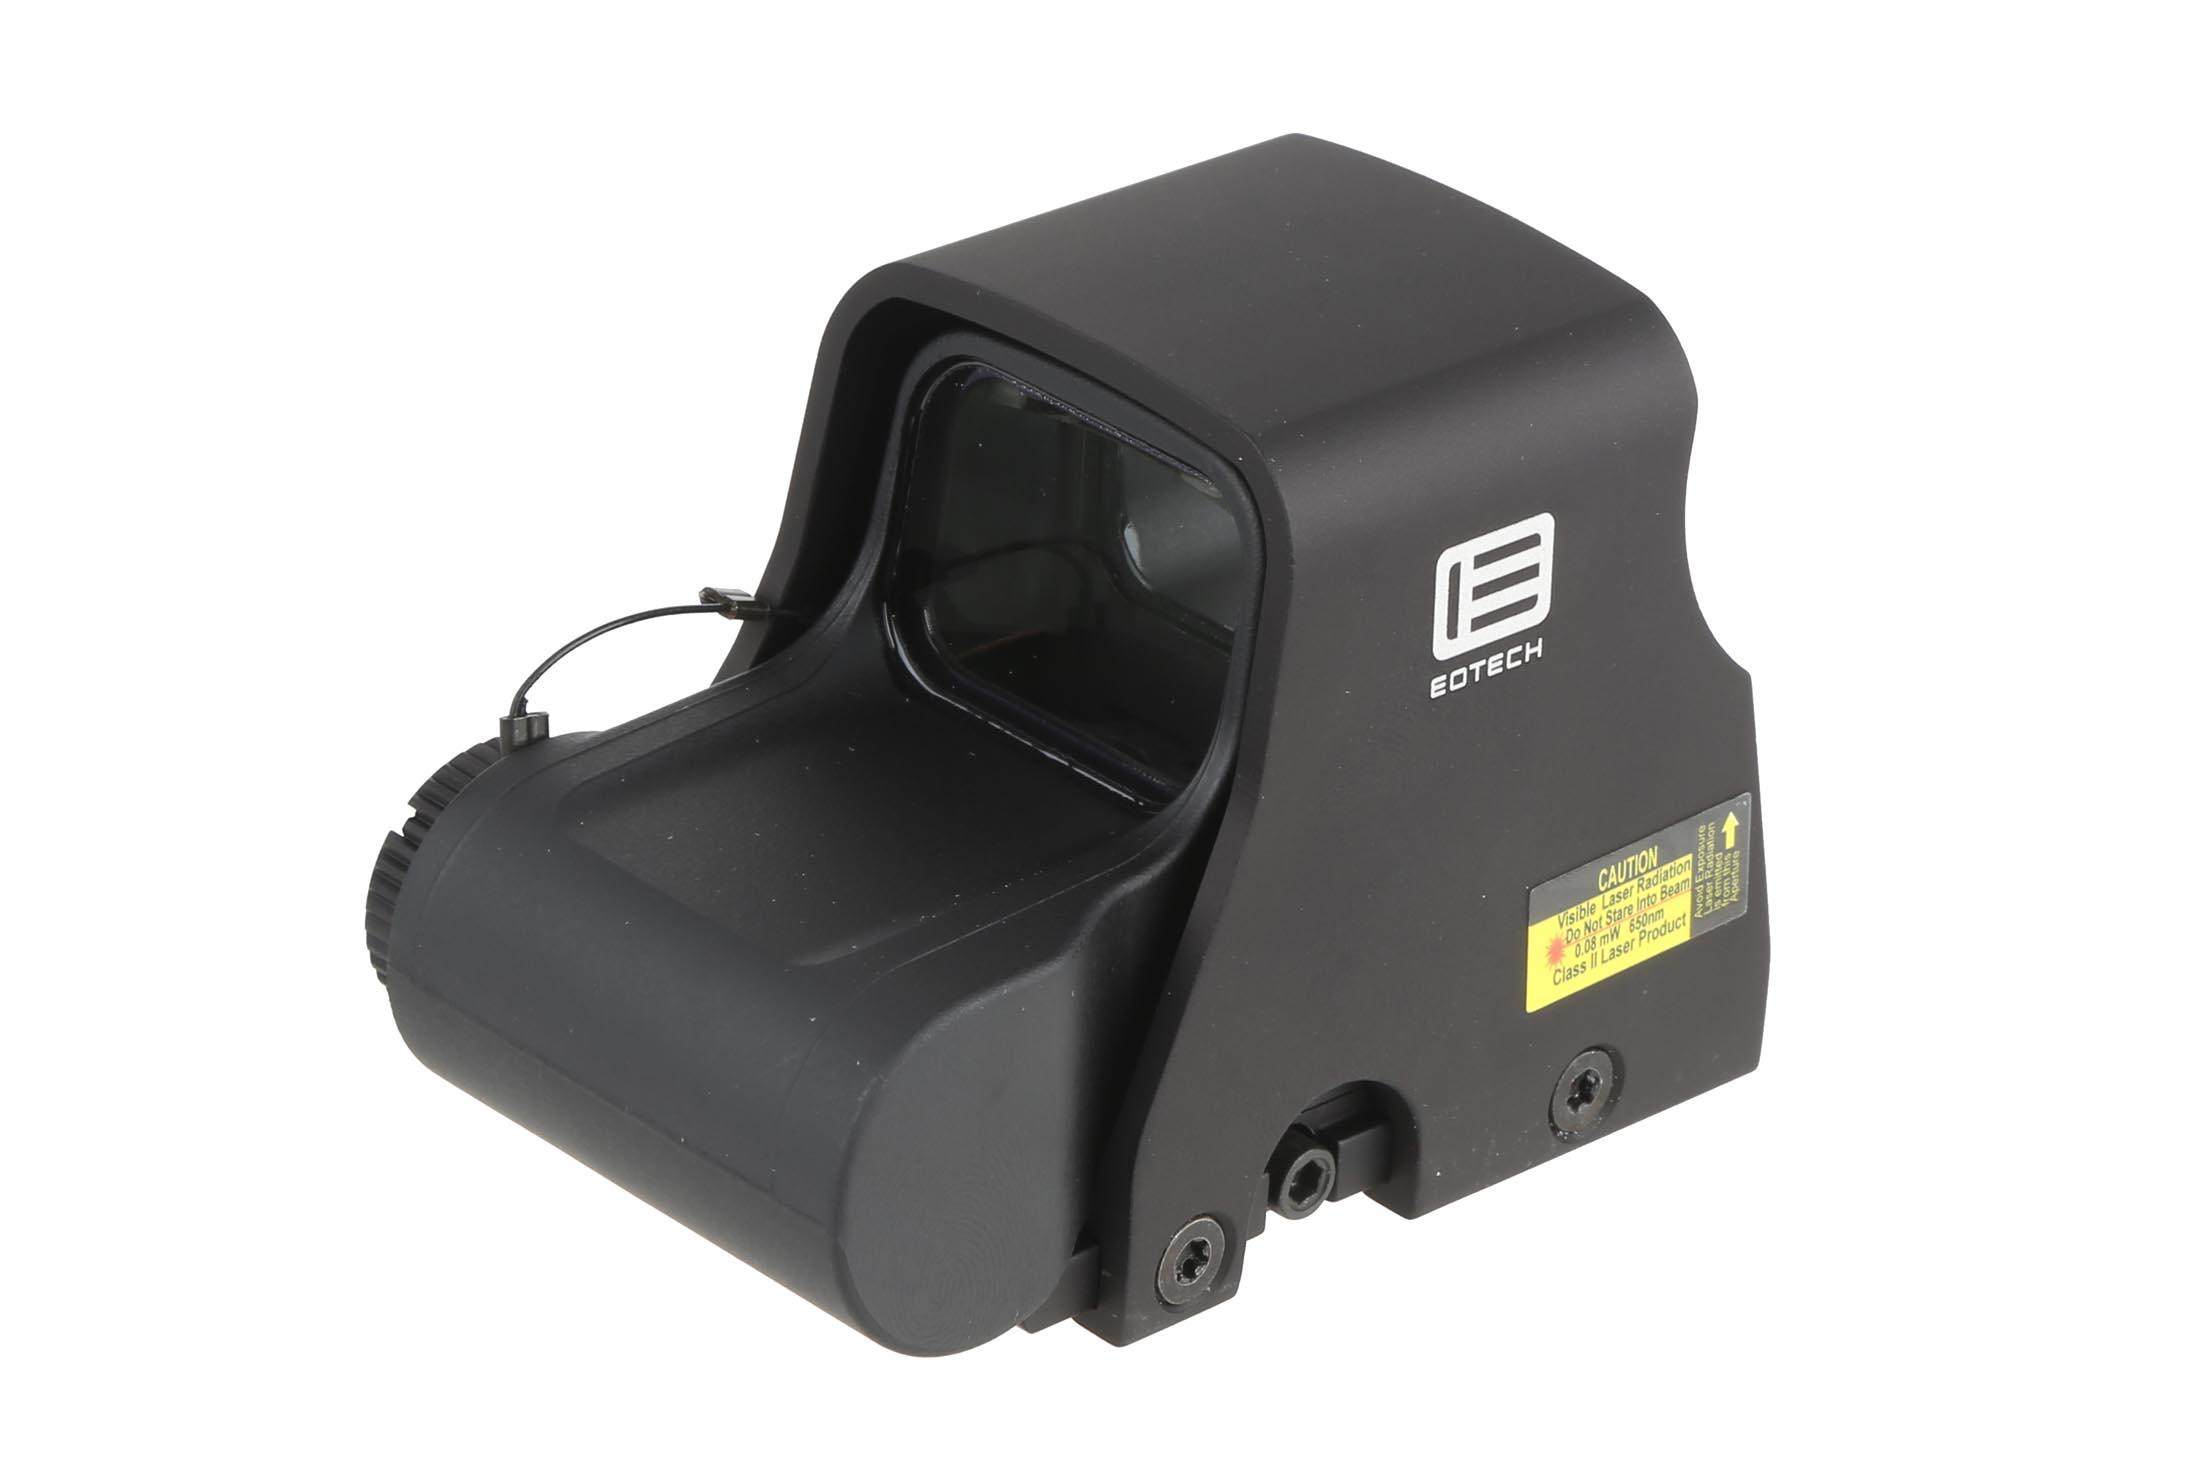 The Eotech XPS2-2 hws sight features a red dot and circle reticle